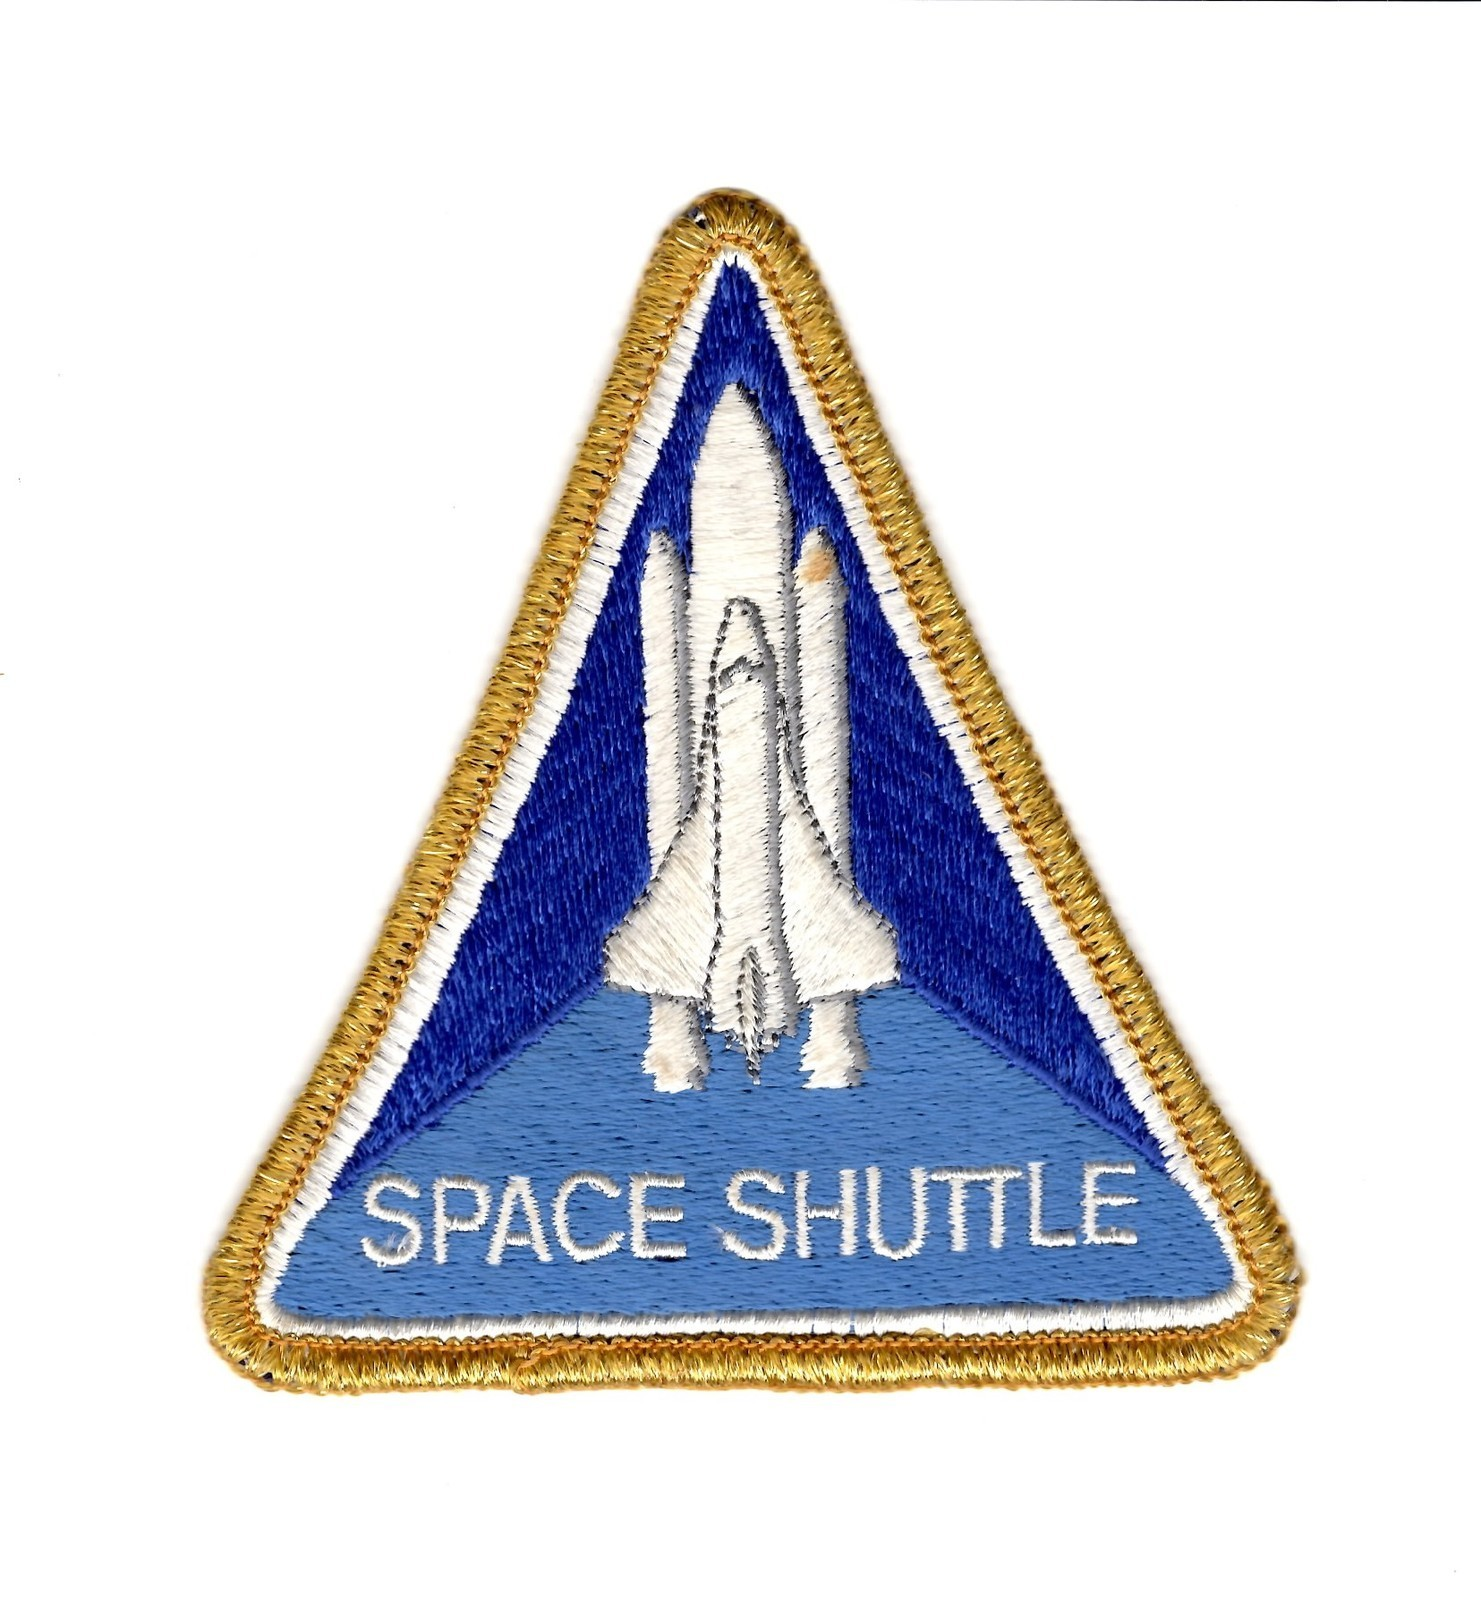 nasa patches on sleeve - photo #15